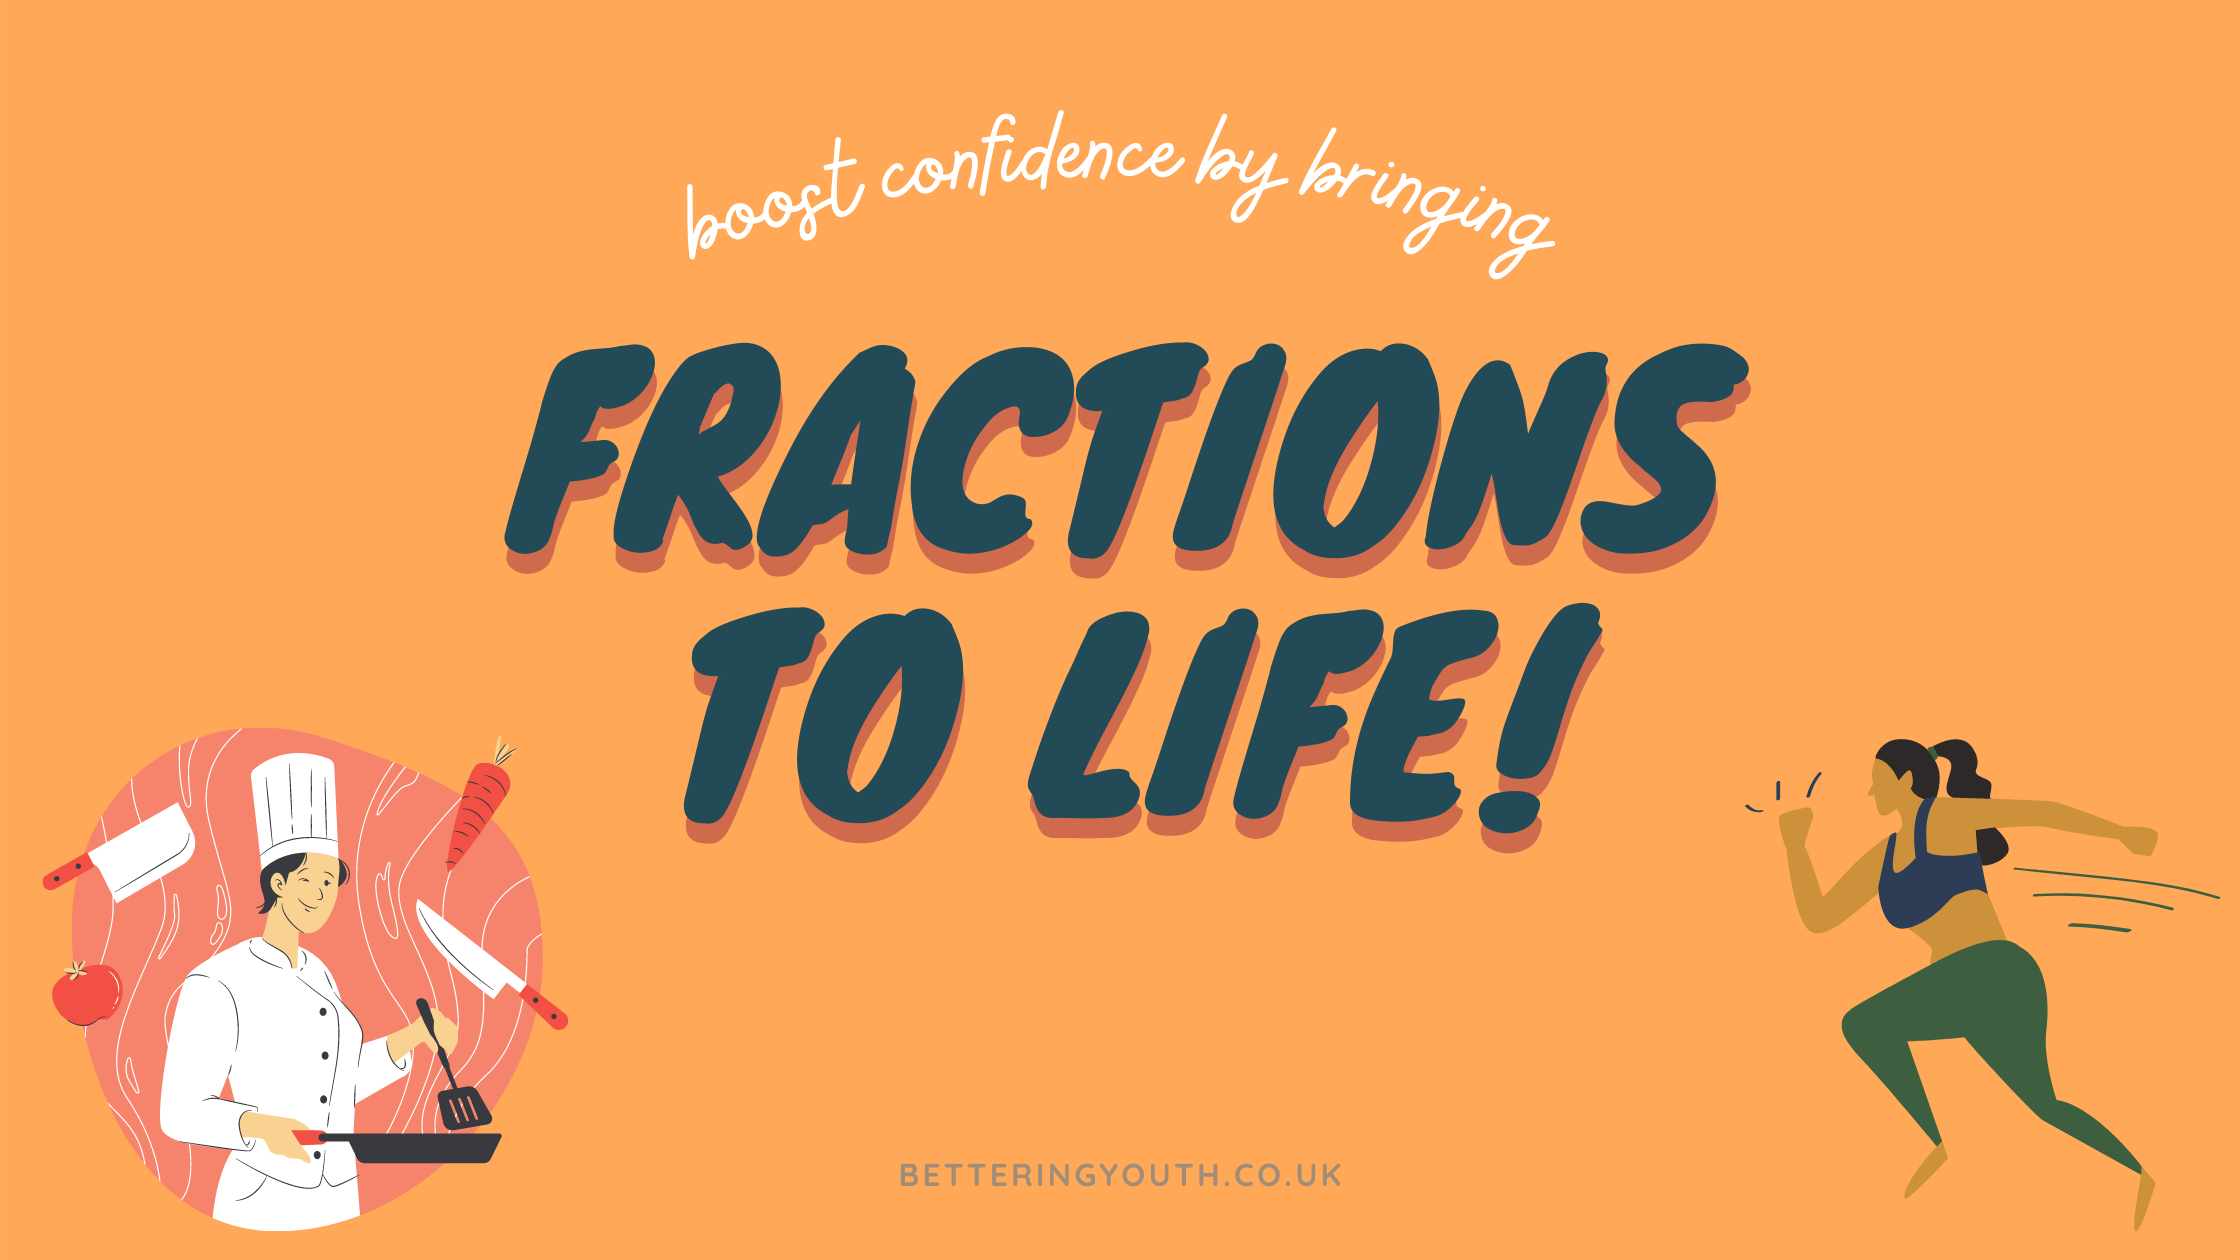 A Parent's Guide: Bring Fractions to Life! (13 easy suggestions)